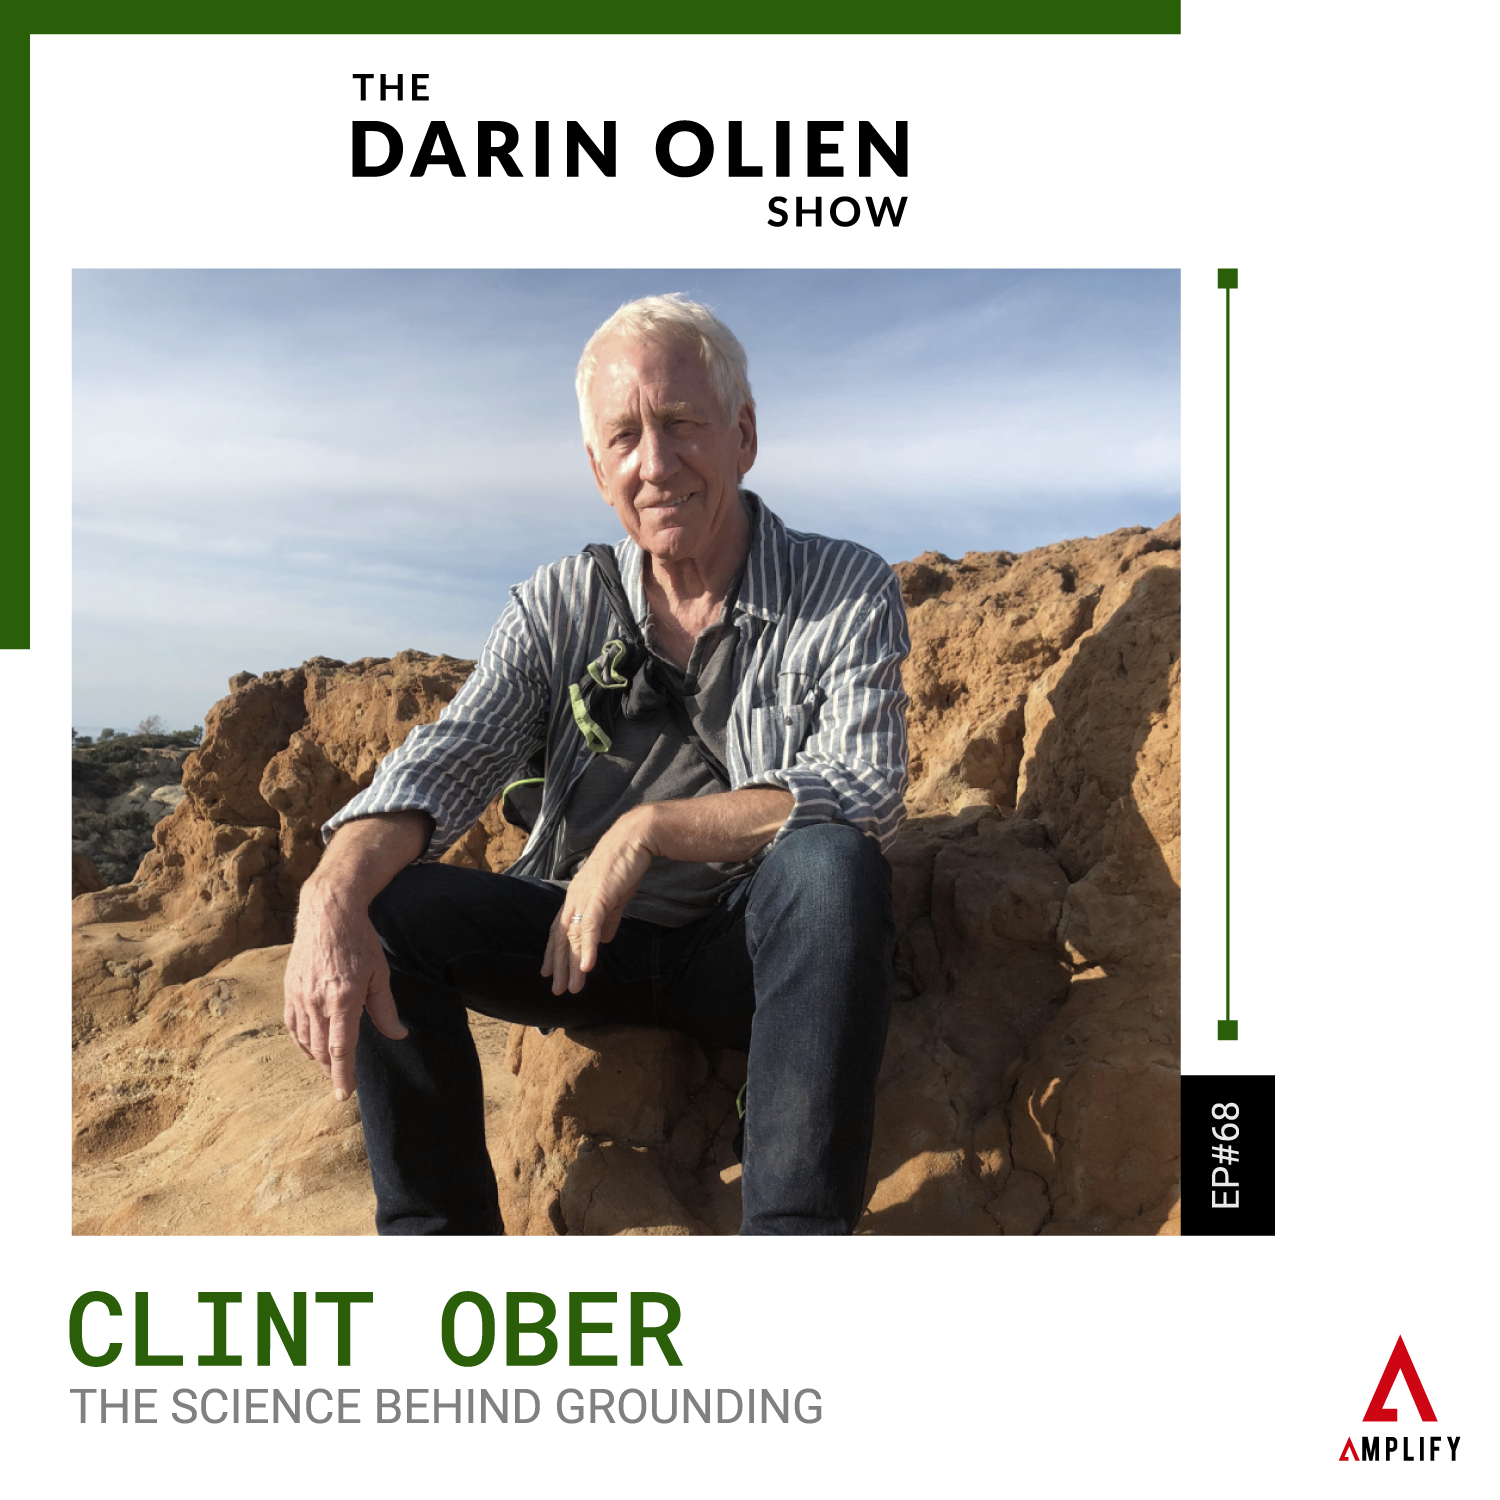 decorative image with the title and a picture of Clint Ober